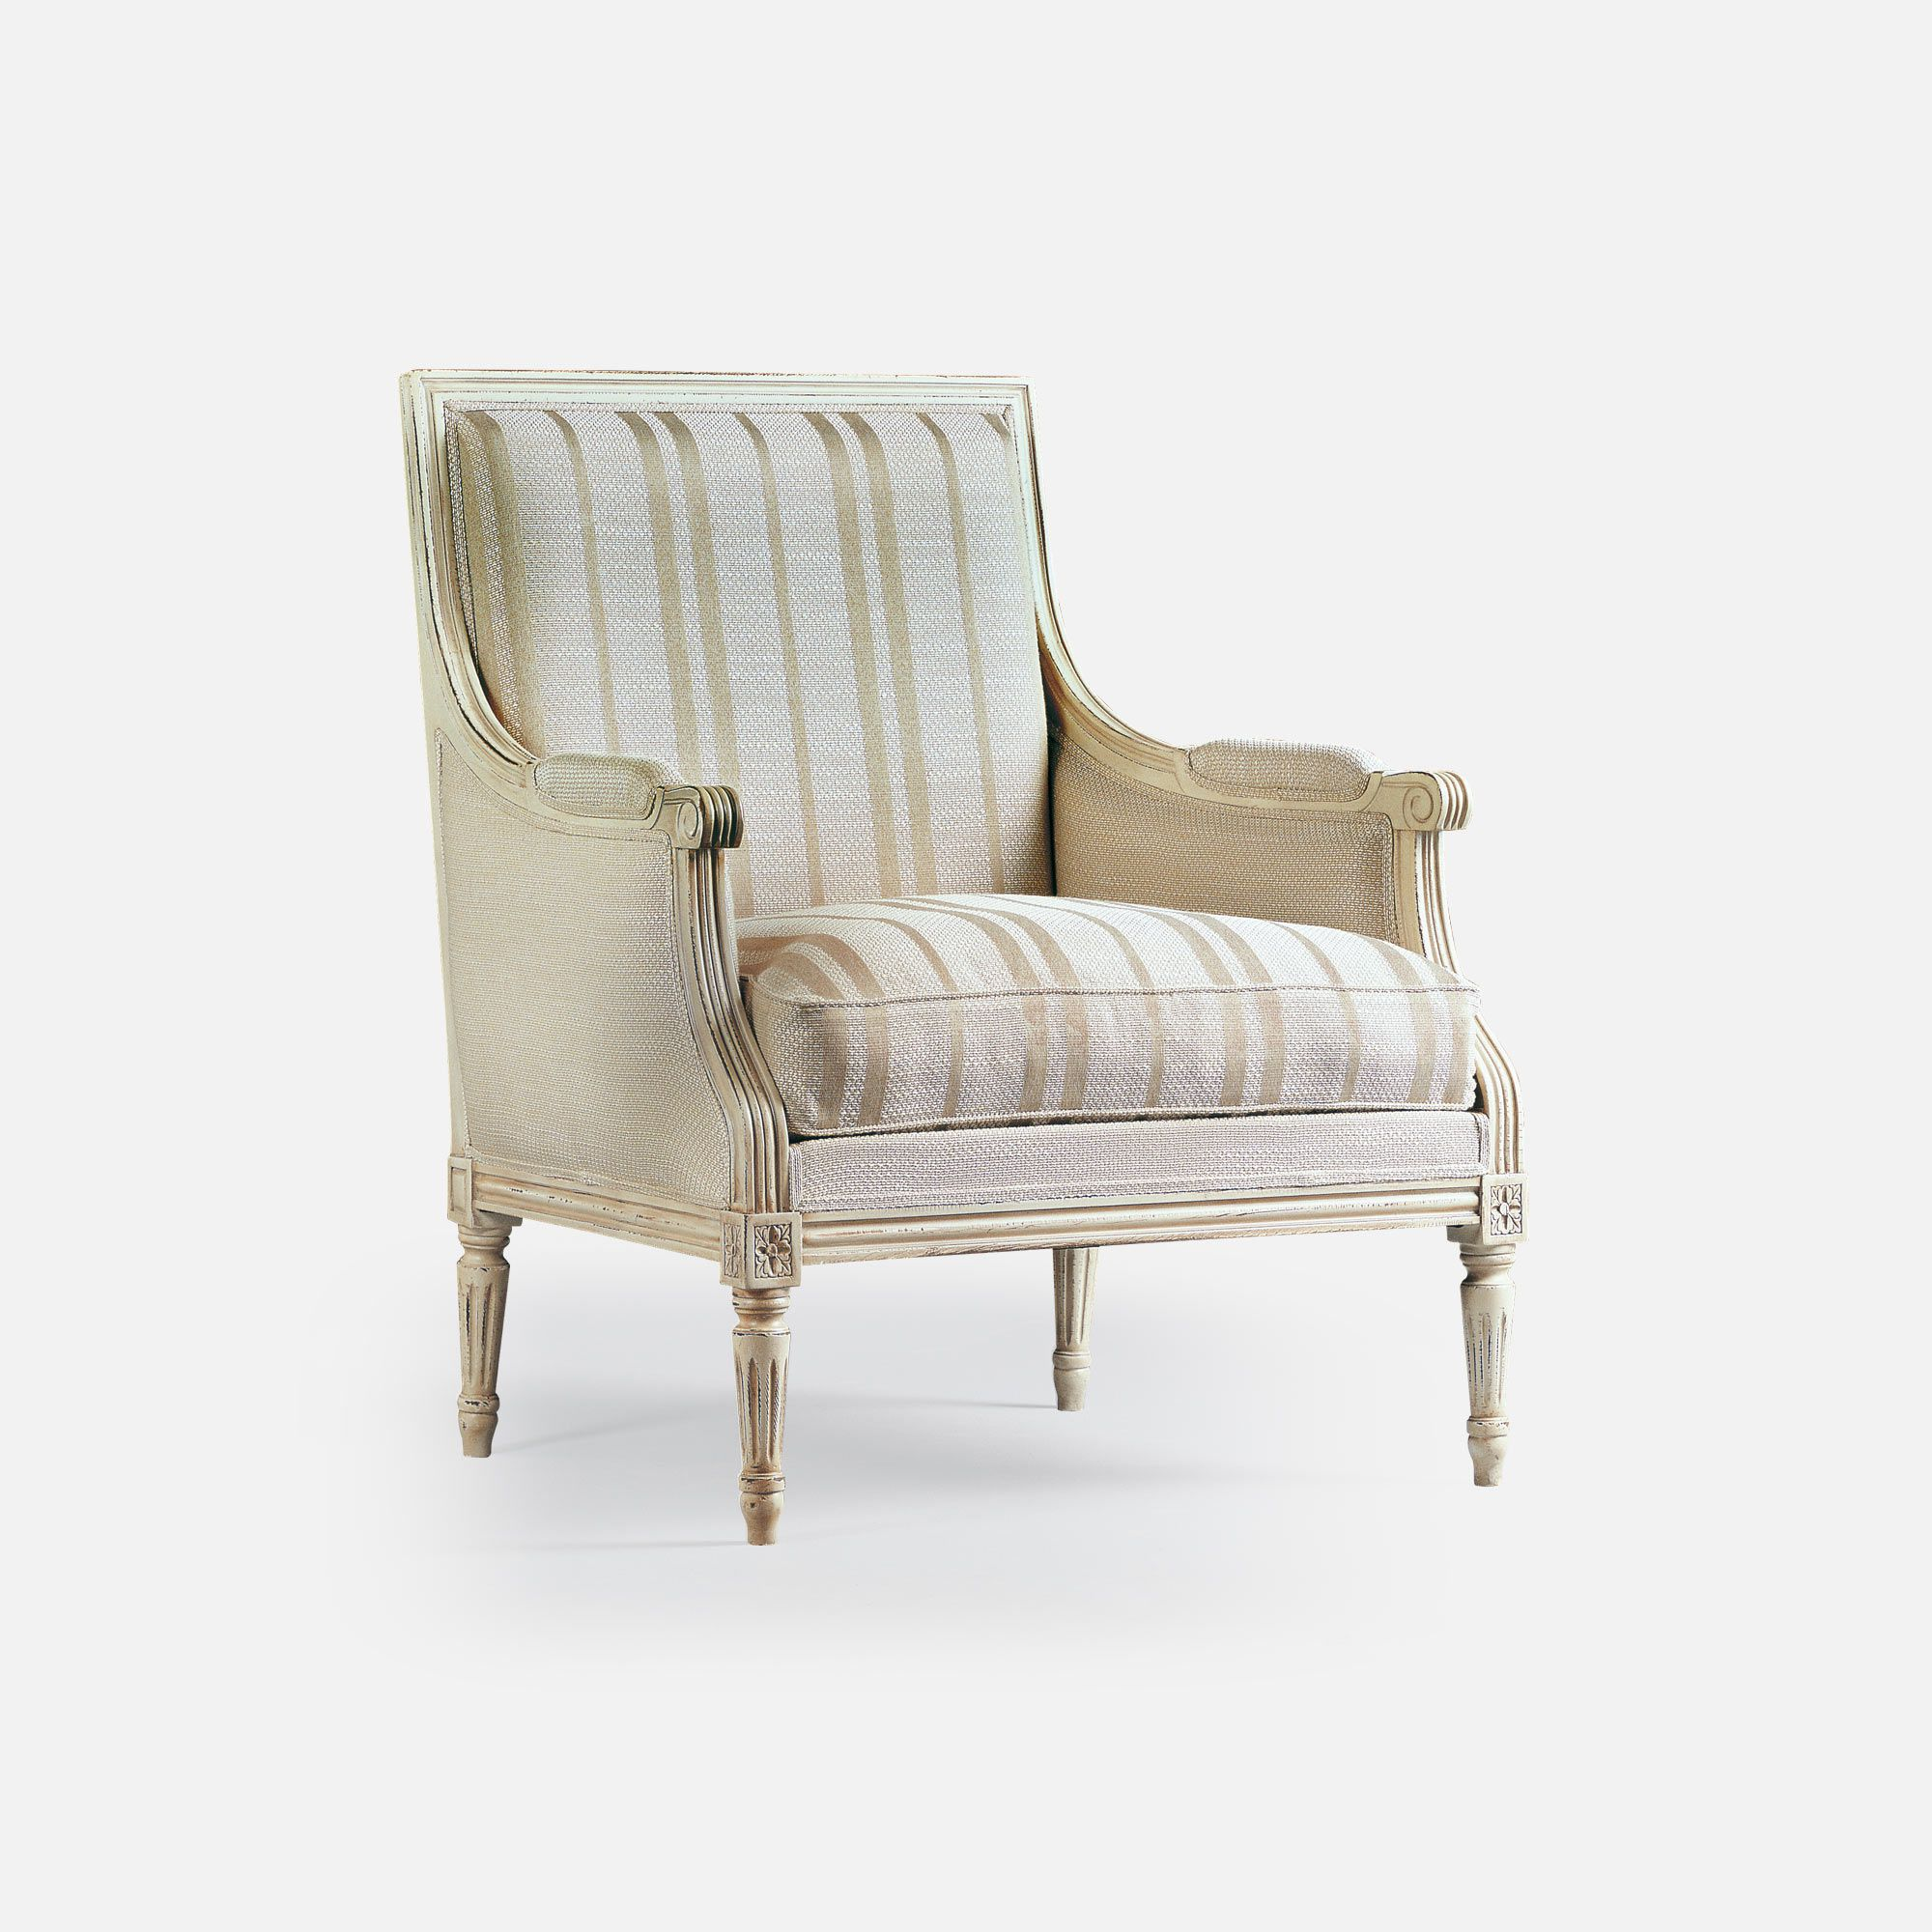 Bergere Chair For Hotel Amp Restaurant Louis Xvi Collinet